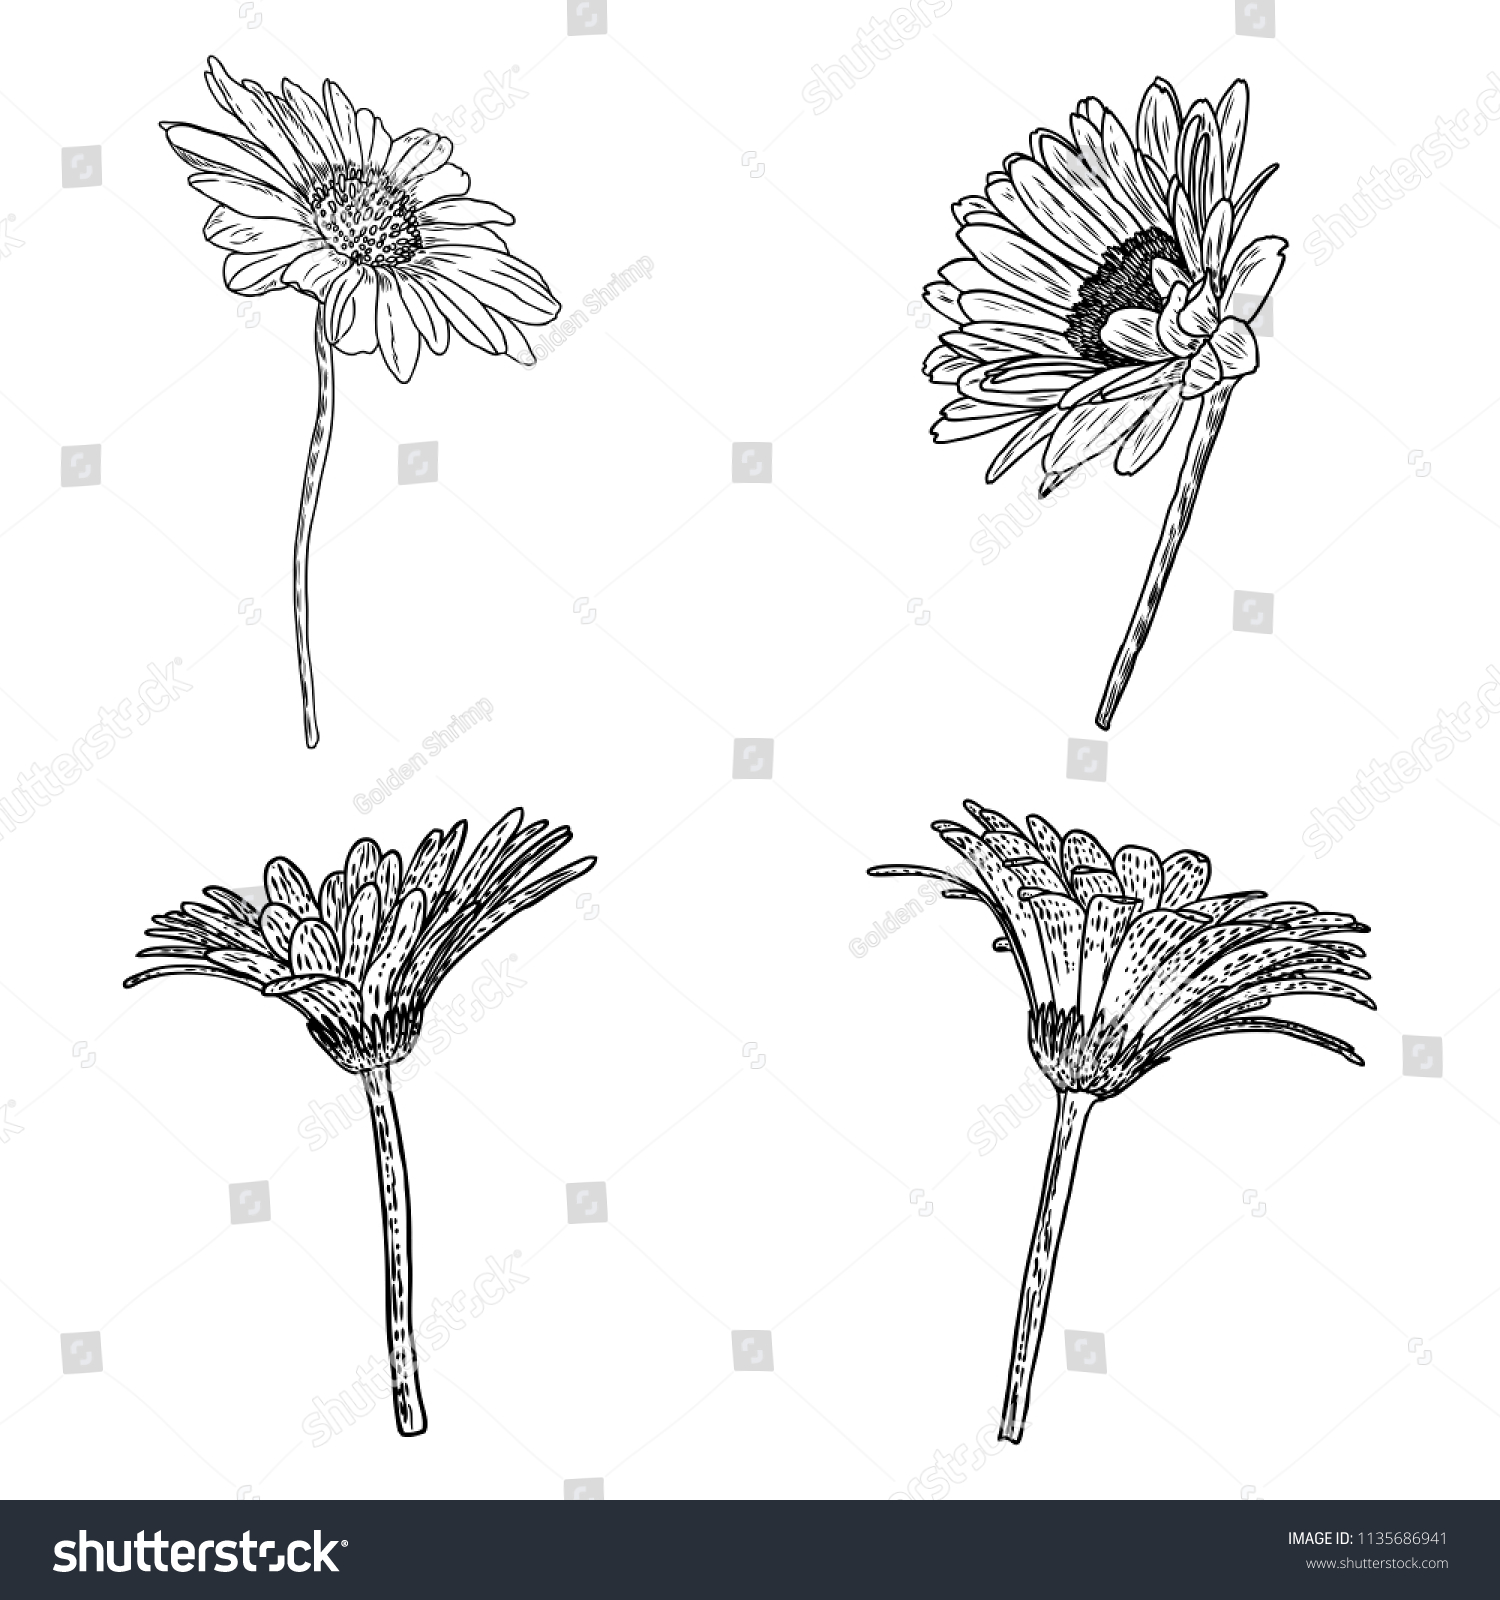 Daisy floral botany collection sketch daisy stock vector royalty daisy floral botany collection sketch daisy flower drawings black and white line art isolated izmirmasajfo